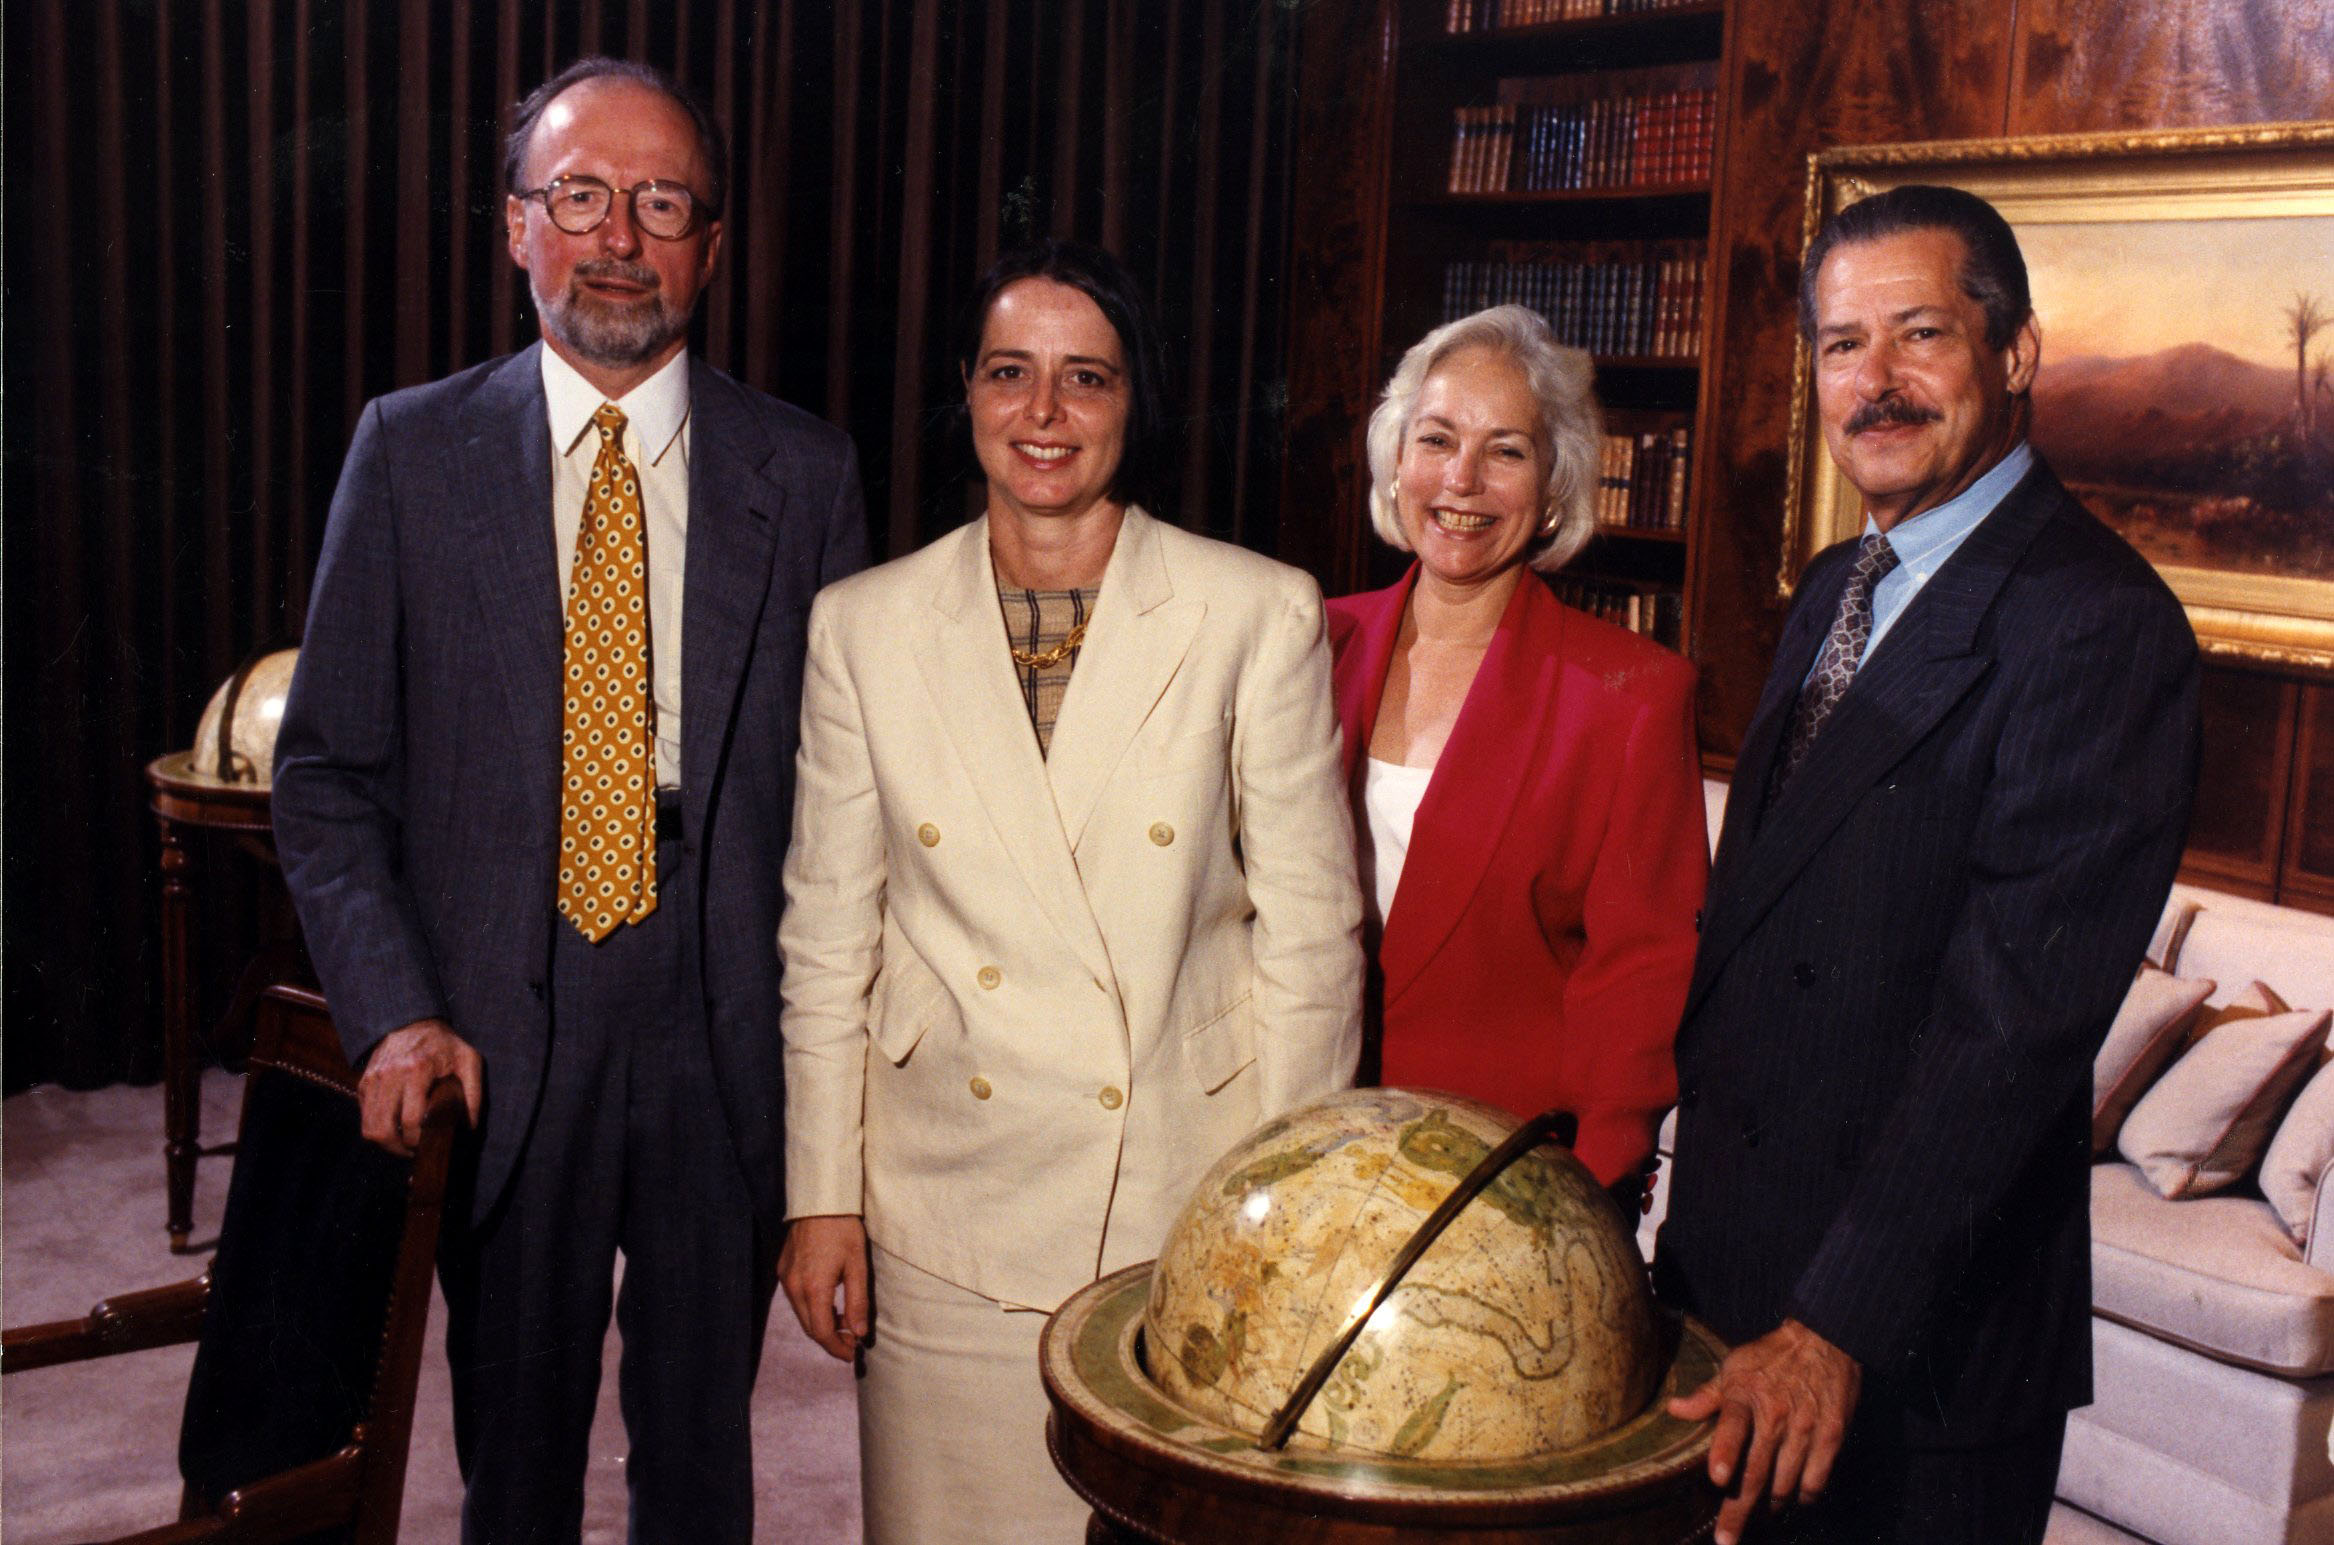 From left, Bob Wilson, Bonnie Burnham, Marilyn Perry, and H. Peter Stern.